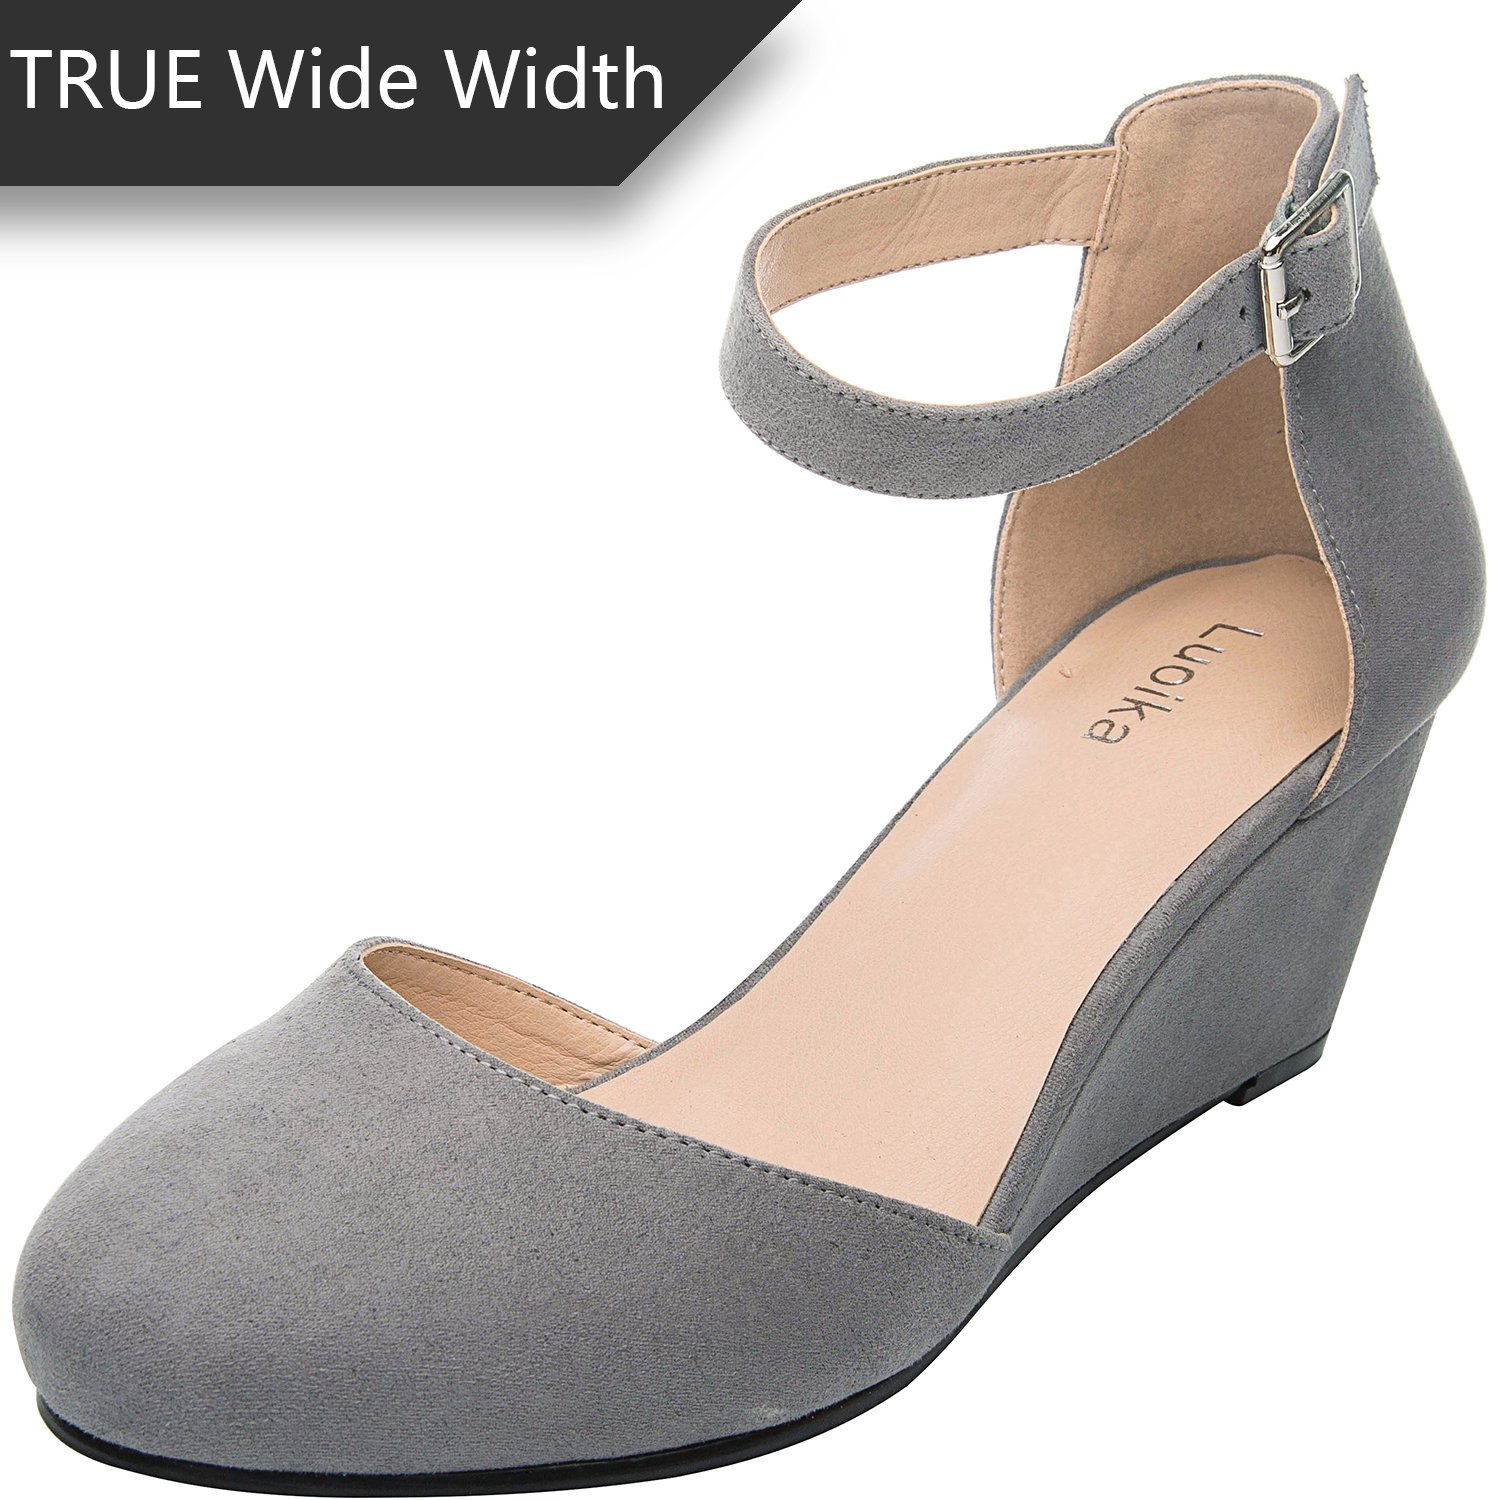 Luoika Women's Wide Width Wedge Shoes - Comfortable Mid Low Heel Ankle Buckle Strap, Plus Size Heel Pump Round Closed Toe(180323,Grey,size8.5)